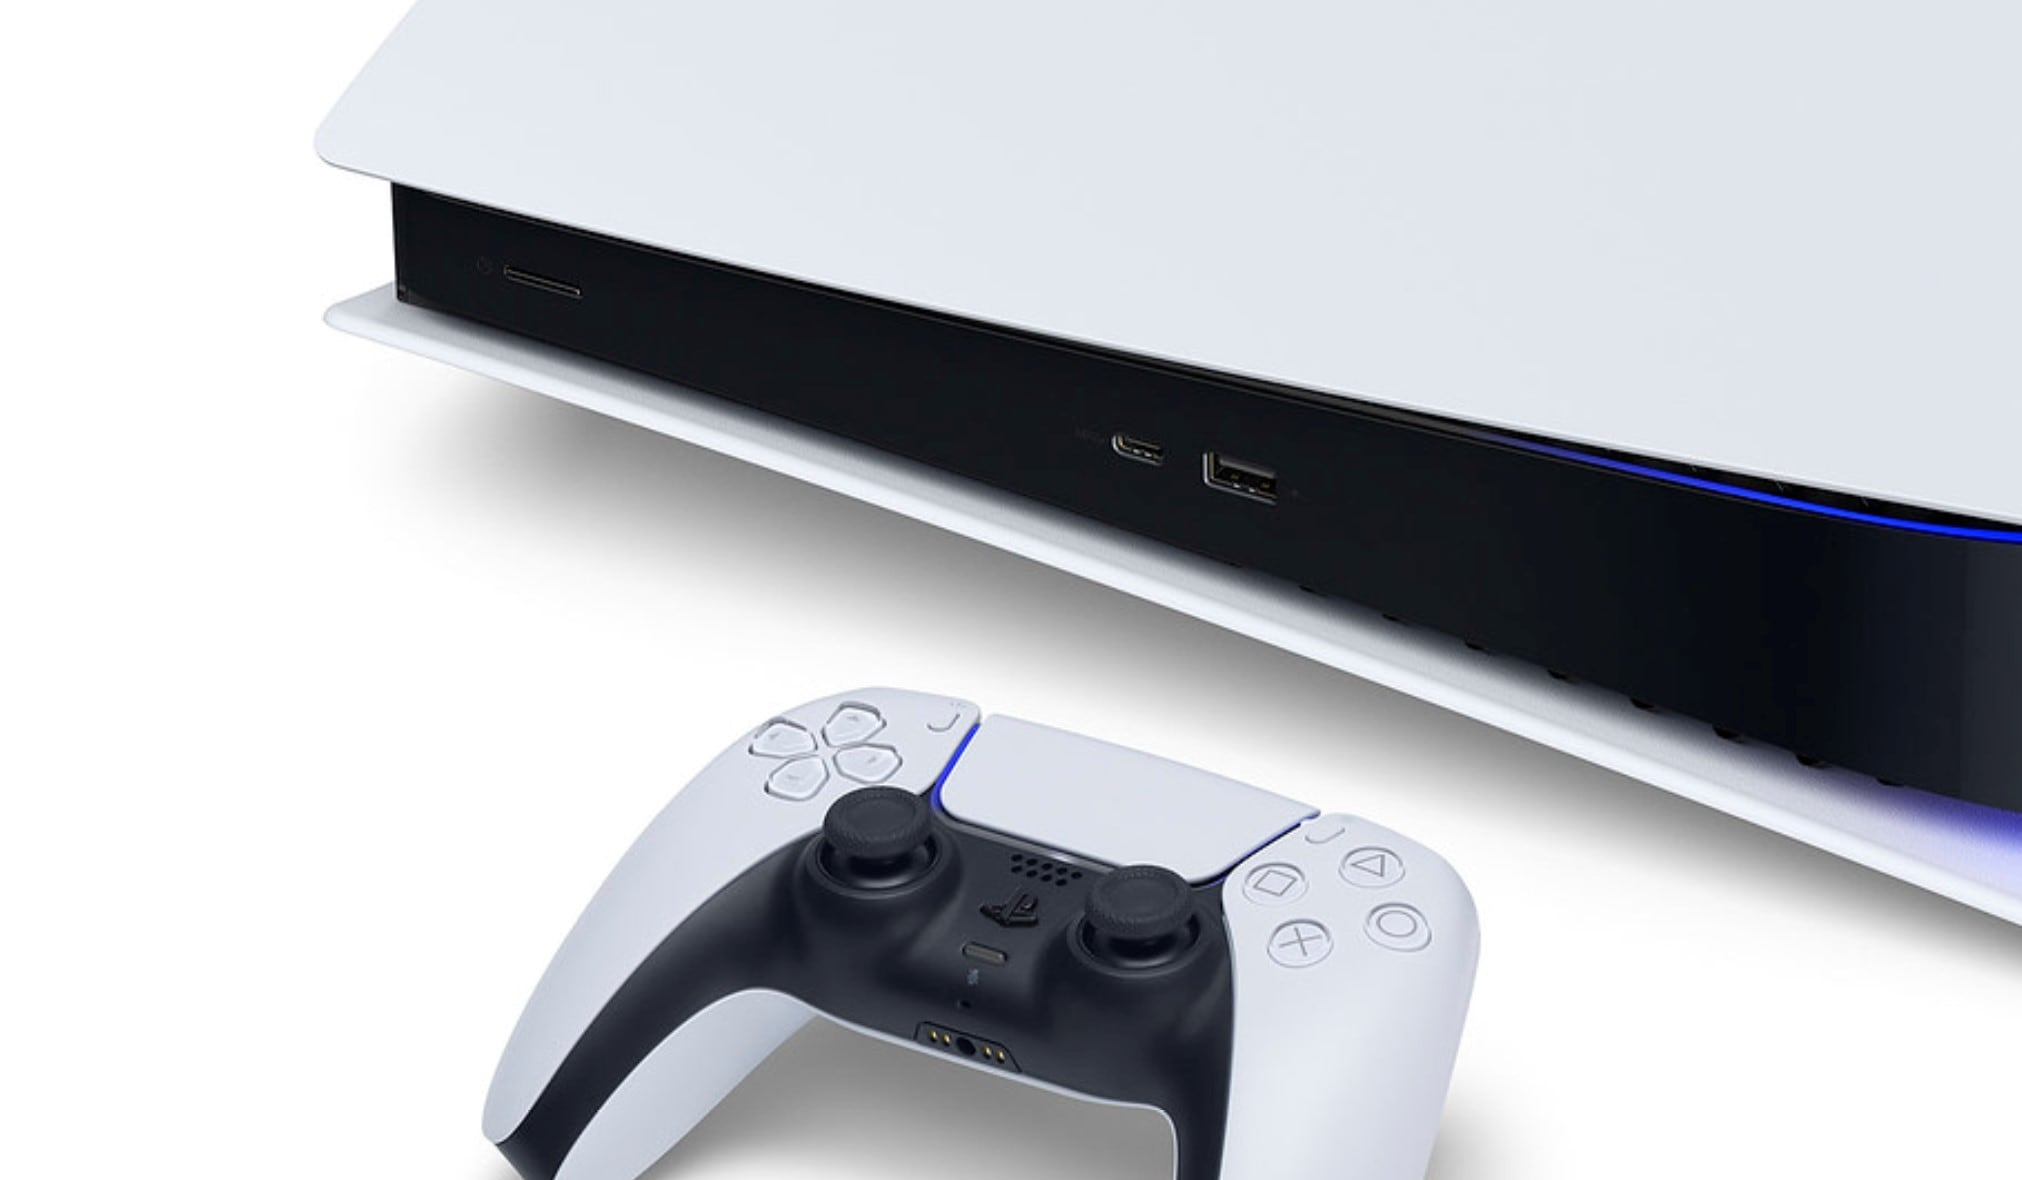 Sony reportedly discontinuing few PS4, PS4 Pro models